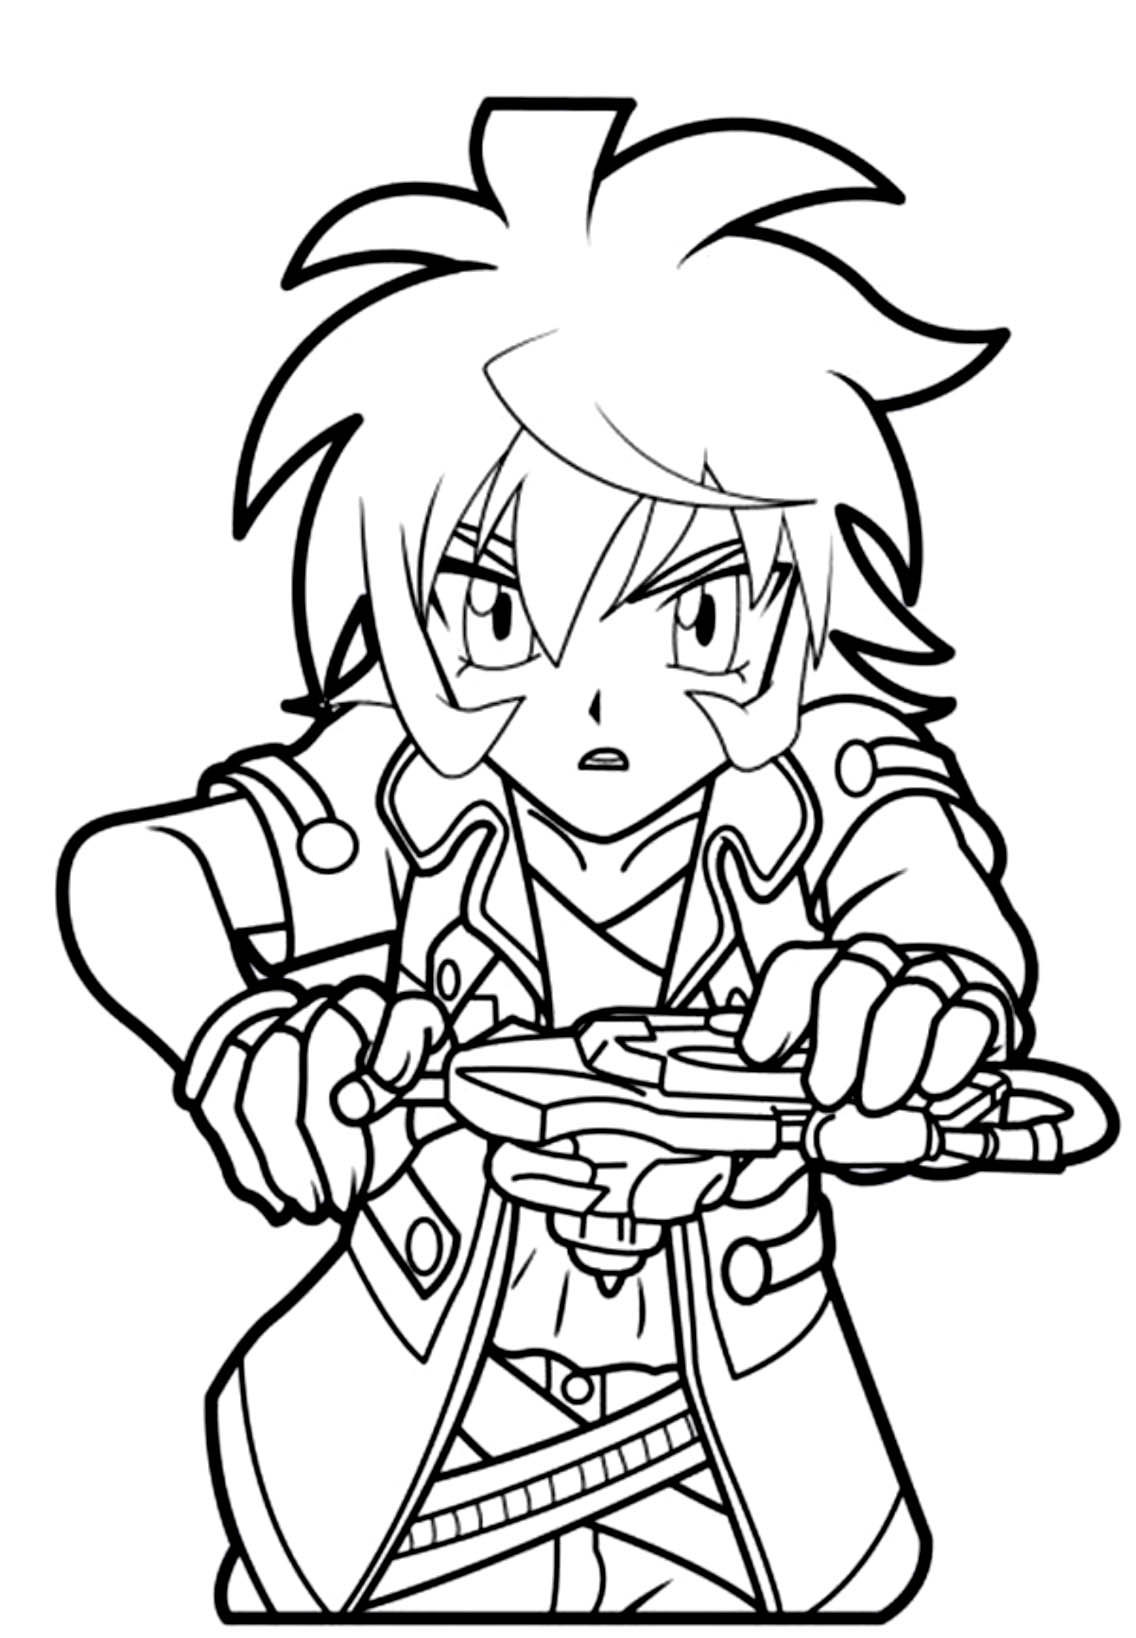 1136x1638 Printable Beyblade Coloring Pages Coloring Me, Printable Ray